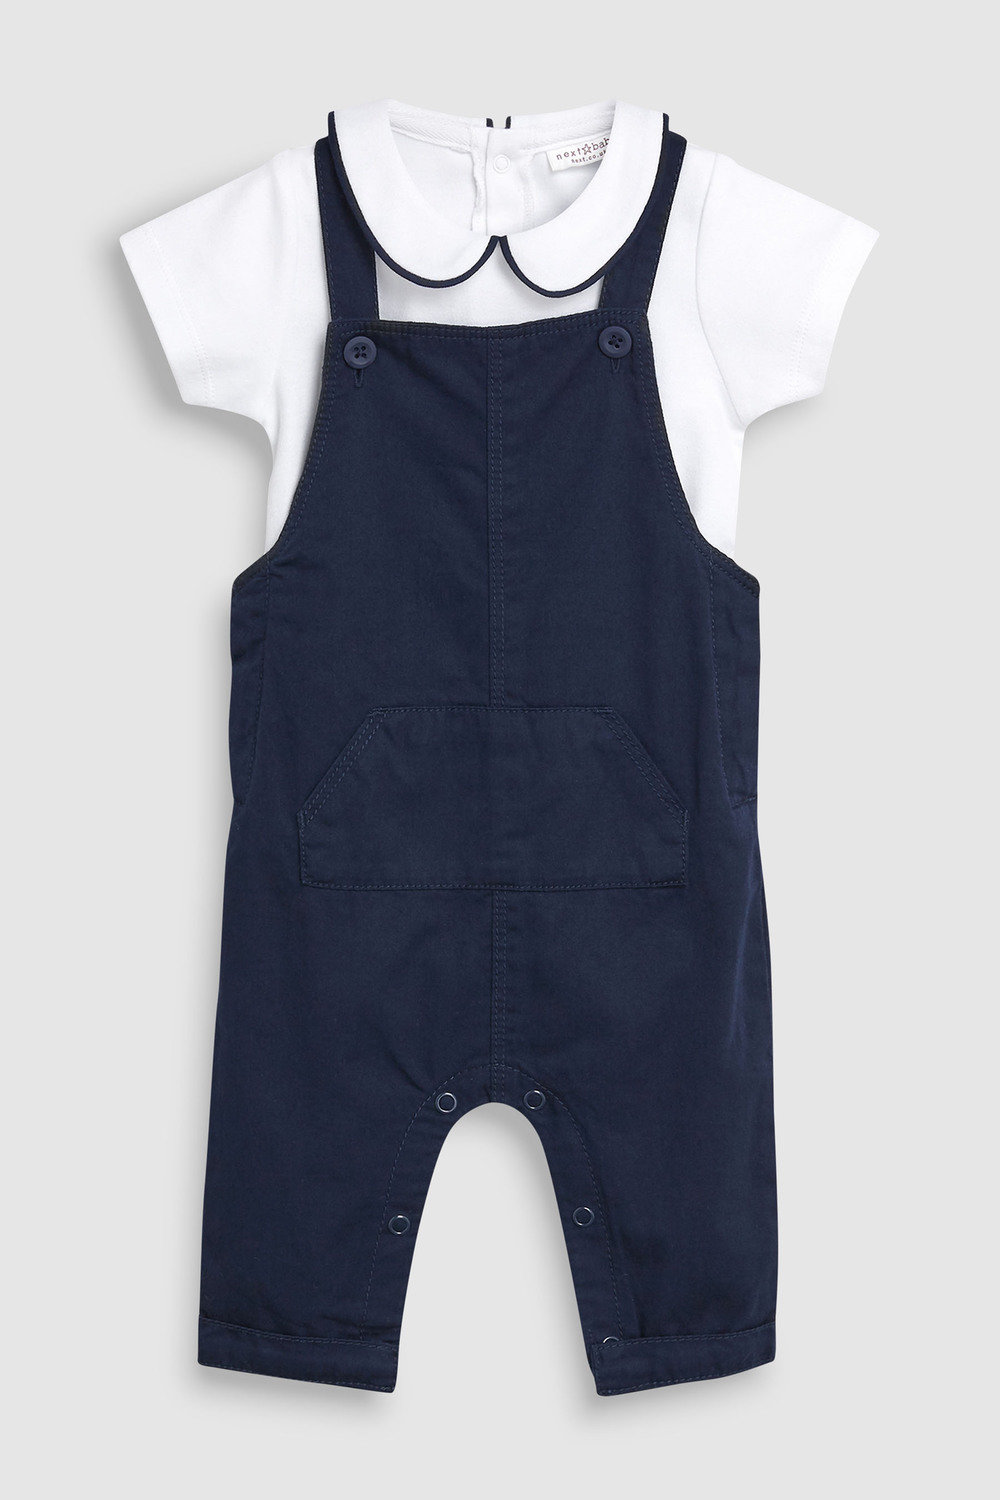 8395ffea1 Next Dungarees And Collar Bodysuit set (0mths-2yrs) Online